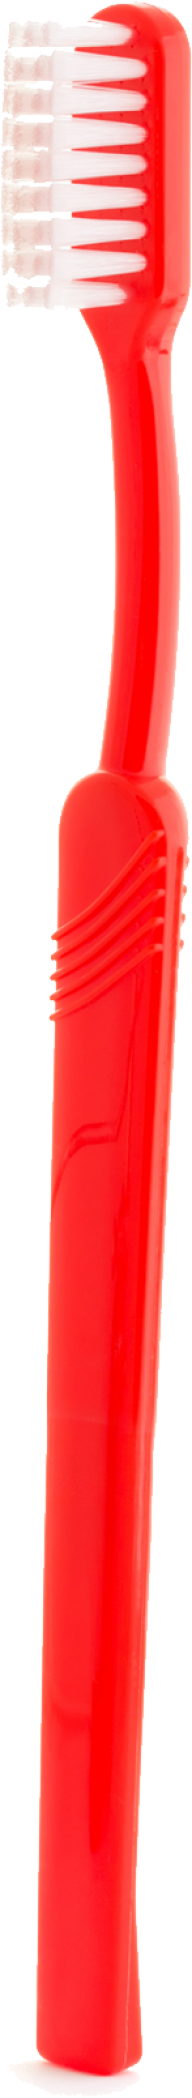 Tooth Brush PNG Free Download 16